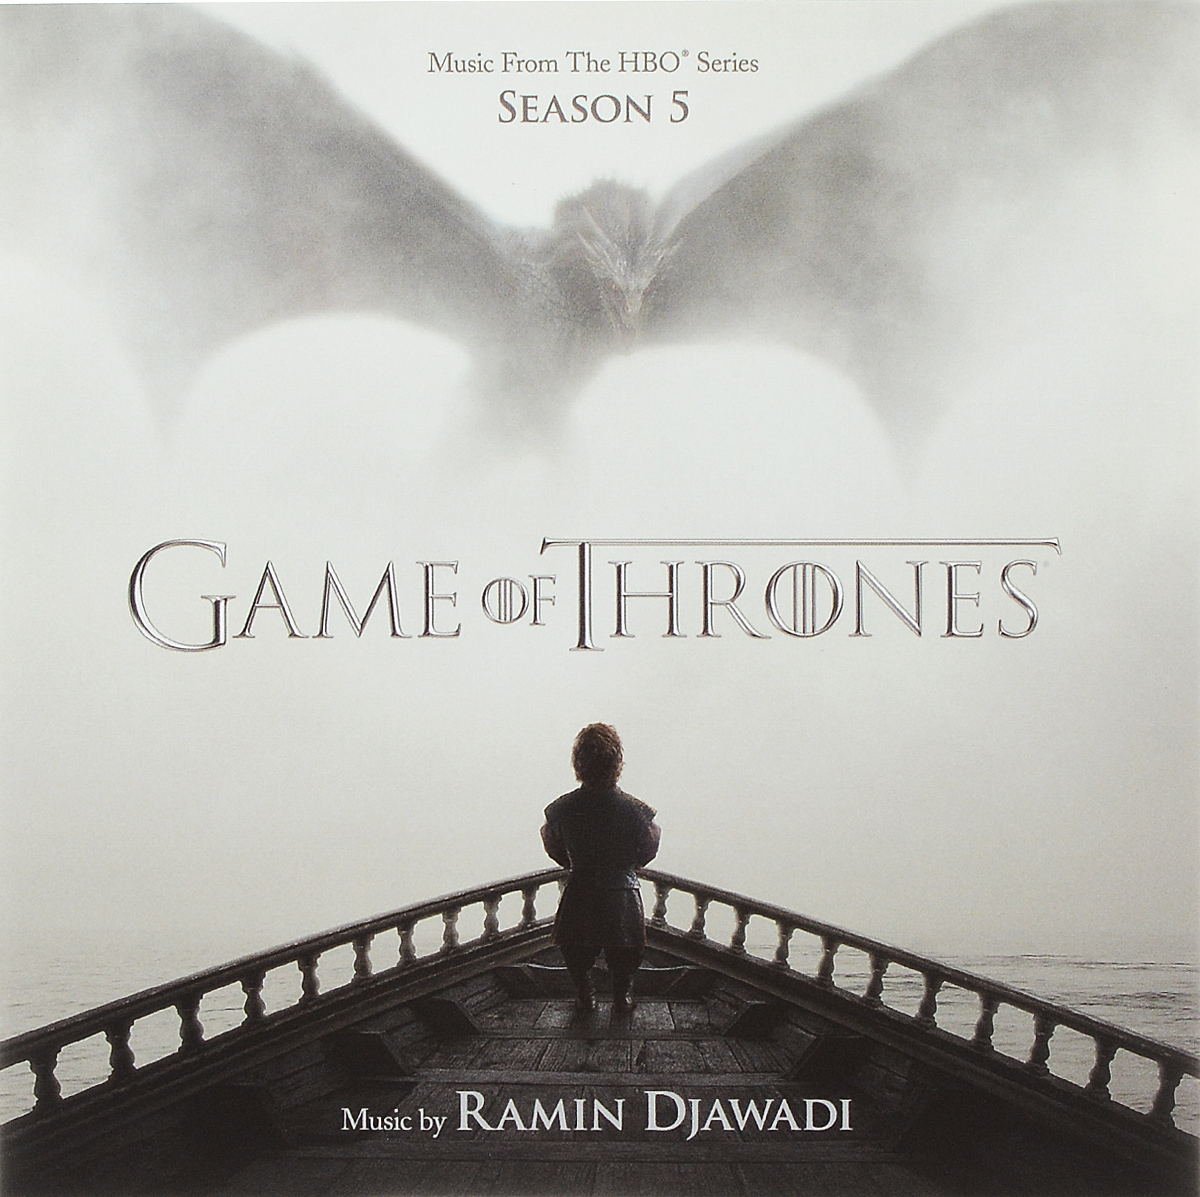 Рамин Джавади Ramin Djawadi. Game Of Thrones Season 5 (Music From The HBO Series) antique carved wood star wars game of thrones music box hand crank theme music welcome to sell friends cooperation